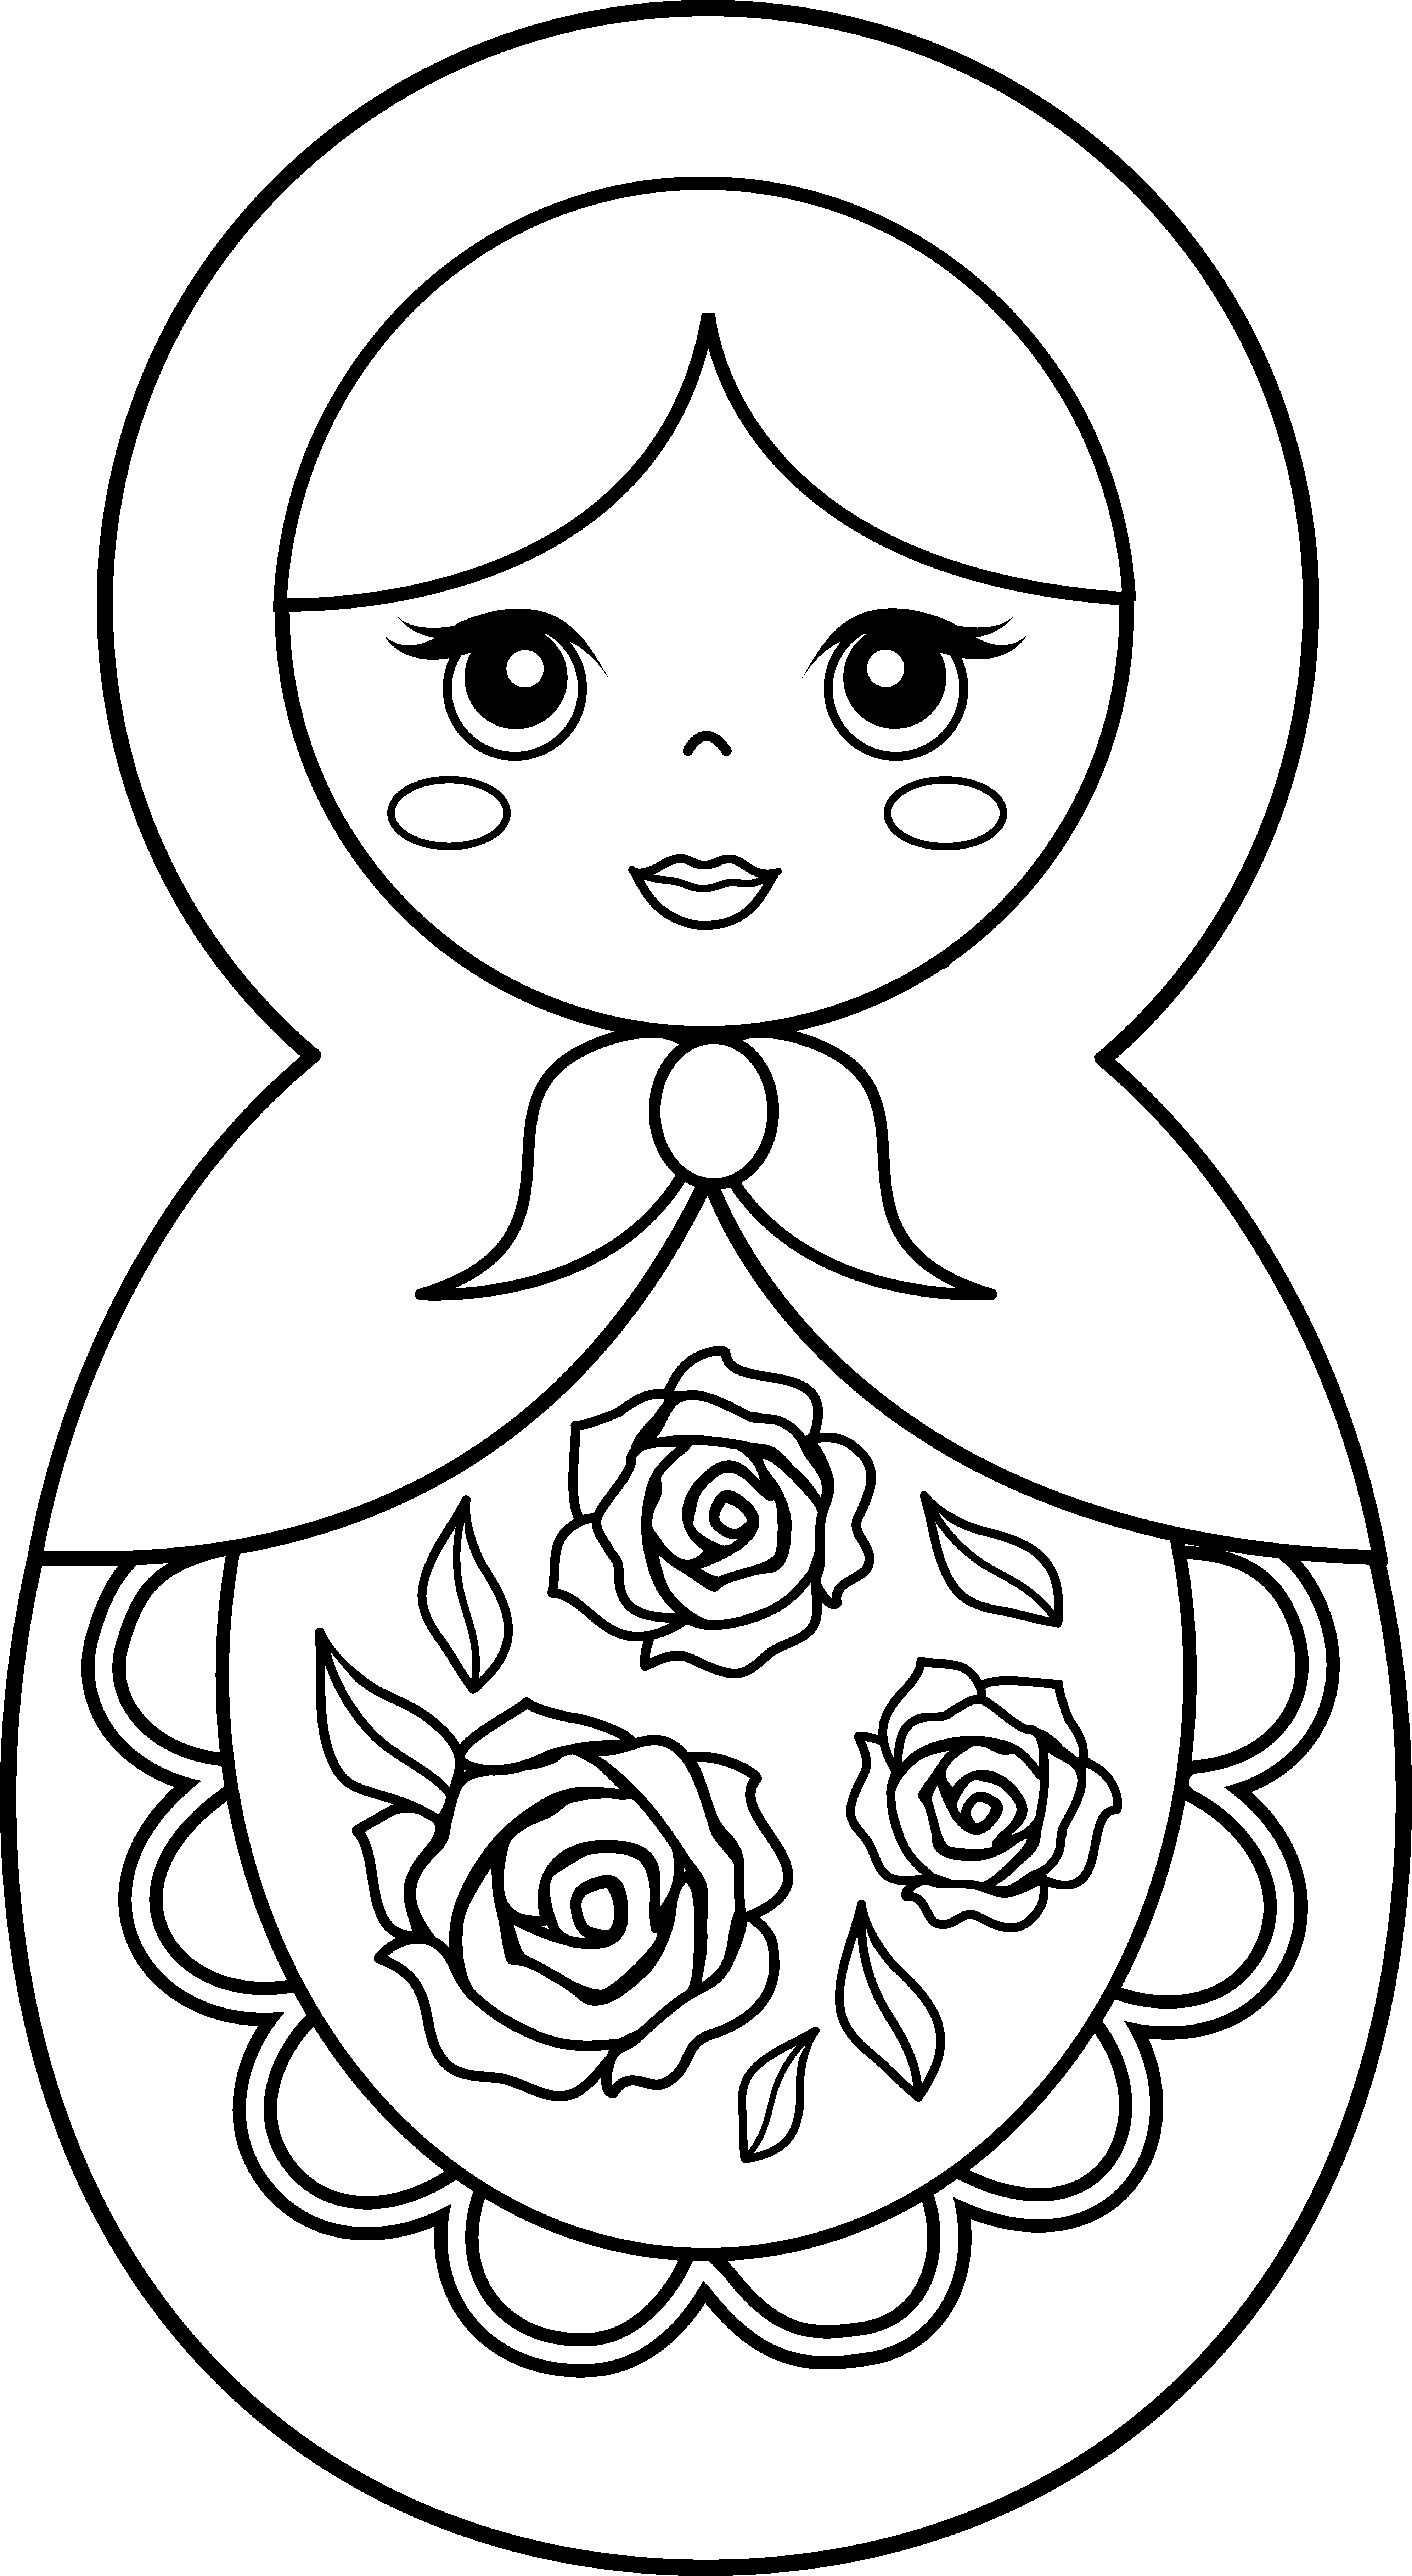 Nest clipart colouring page. Russian nesting dolls coloring